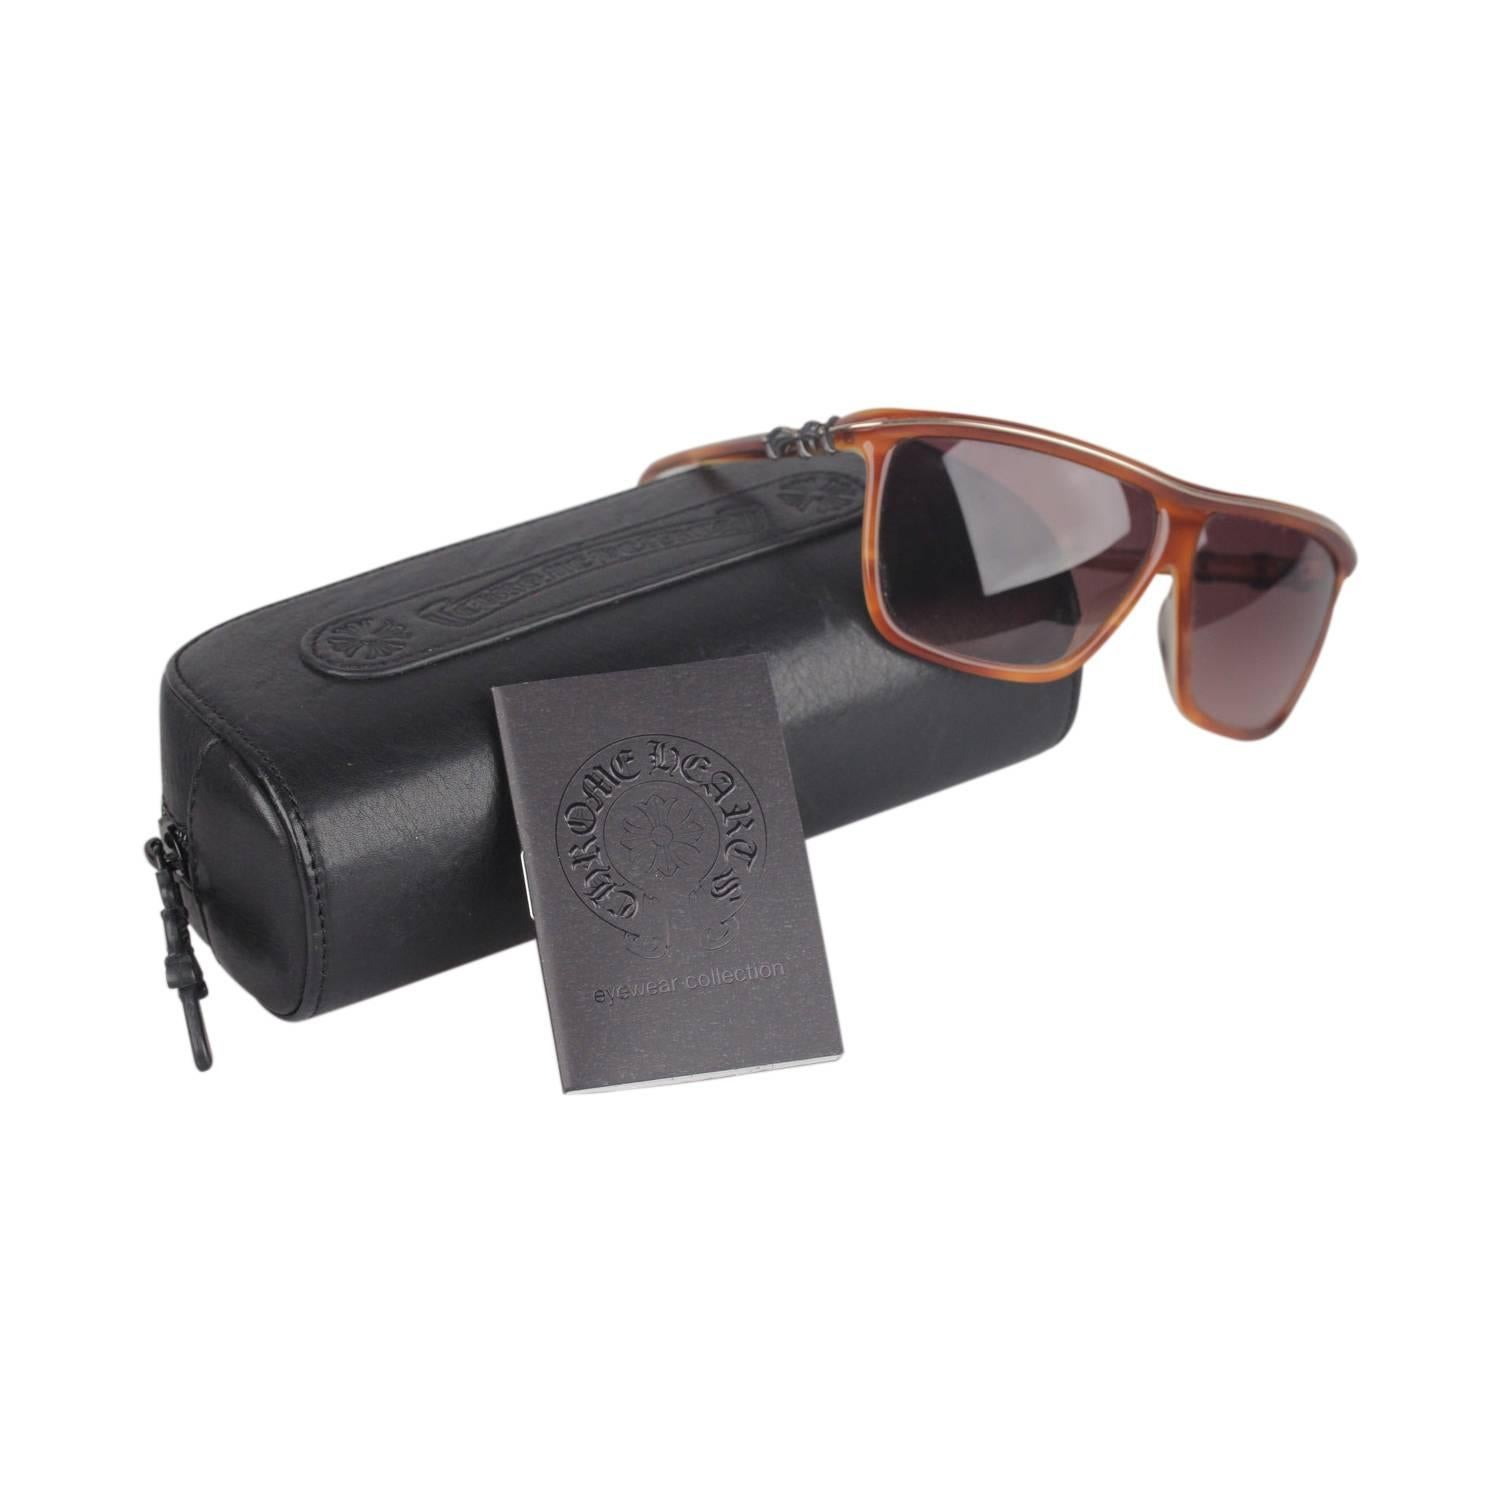 4c32f65479d7 CHROME HEARTS Gold Tone Metal Brown Lens STAINS Aviator Sunglasses For Sale  at 1stdibs